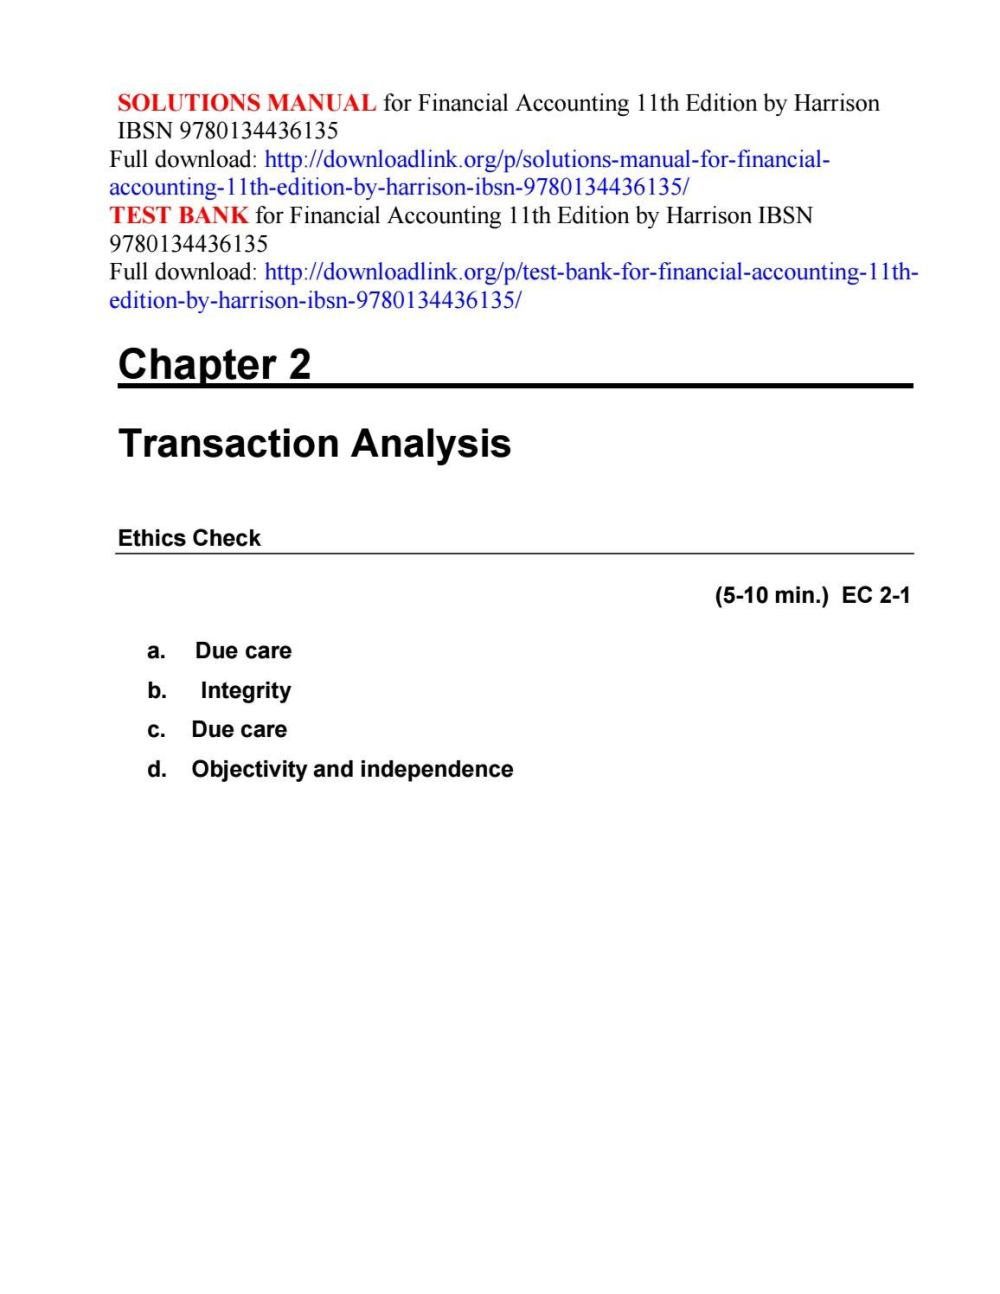 medium resolution of Solutions manual for financial accounting 11th edition by harrison ibsn  9780134436135 by ftgaec - issuu